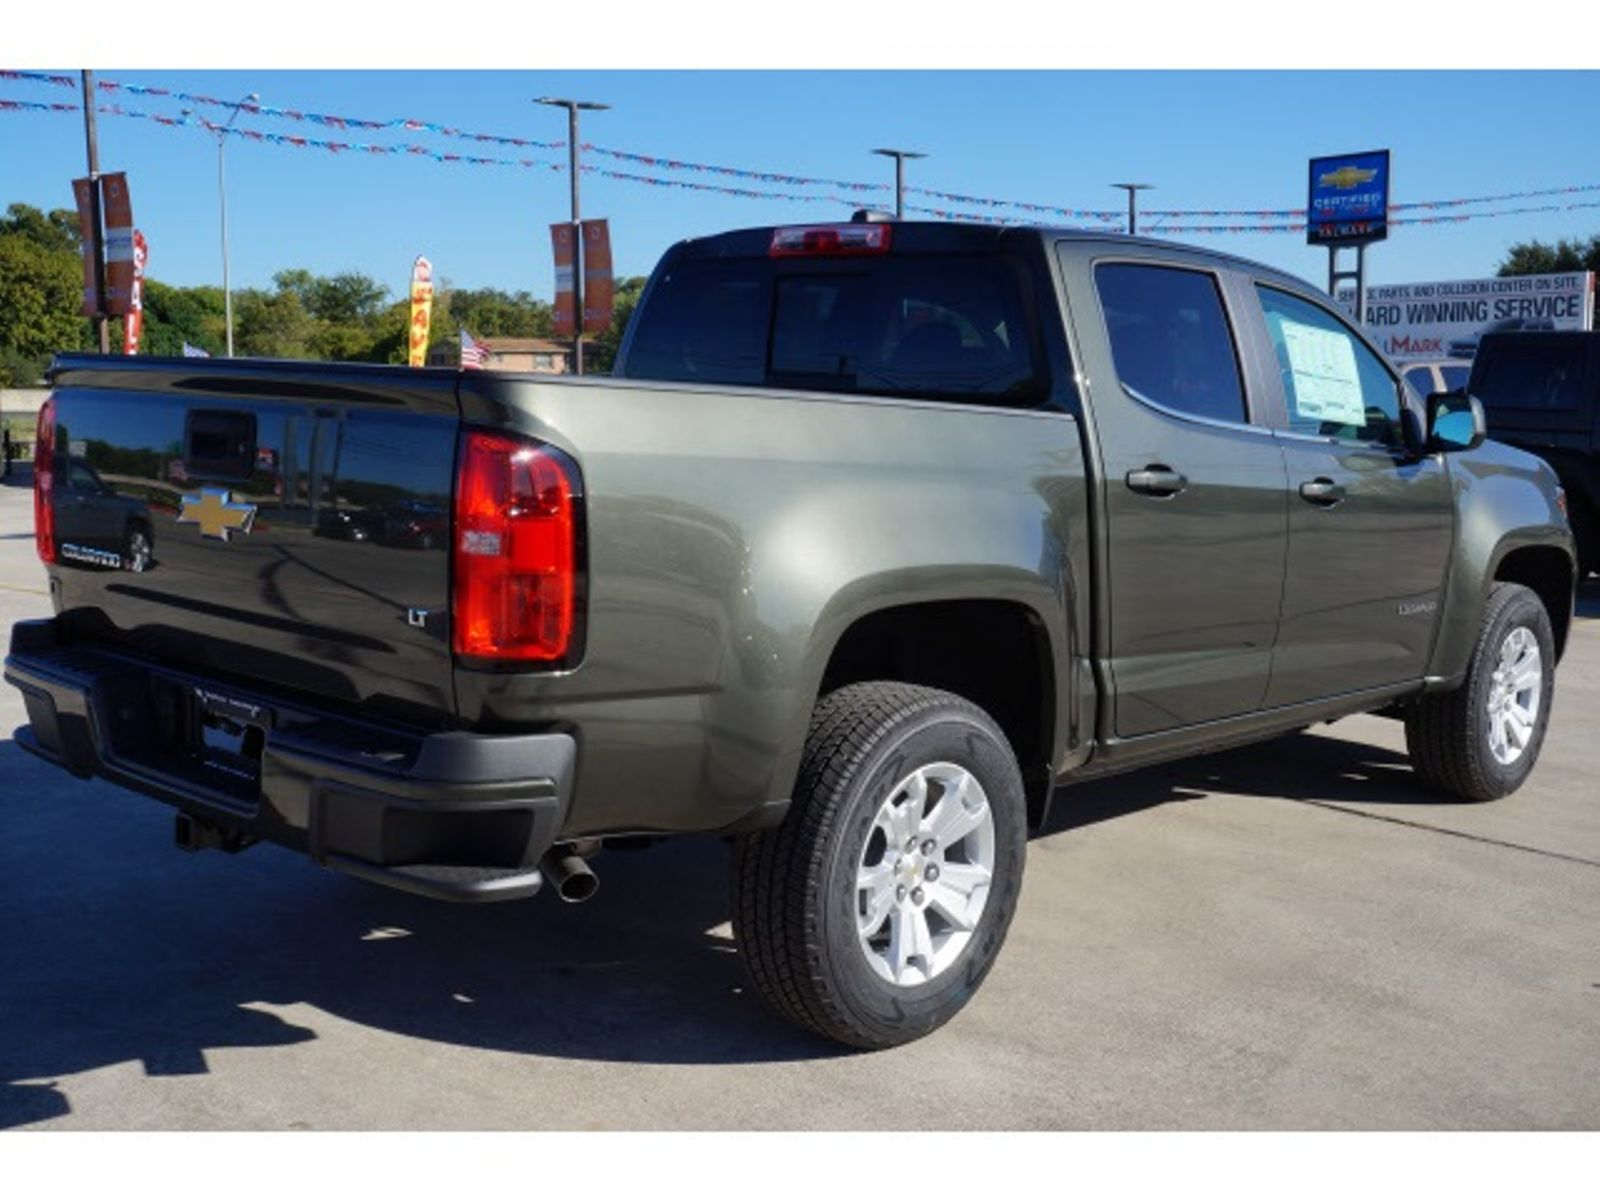 motion chevrolet interesting colorado to gallery inspiration elegant simple used remodel view has for side front wt autocars by sale in chevy with